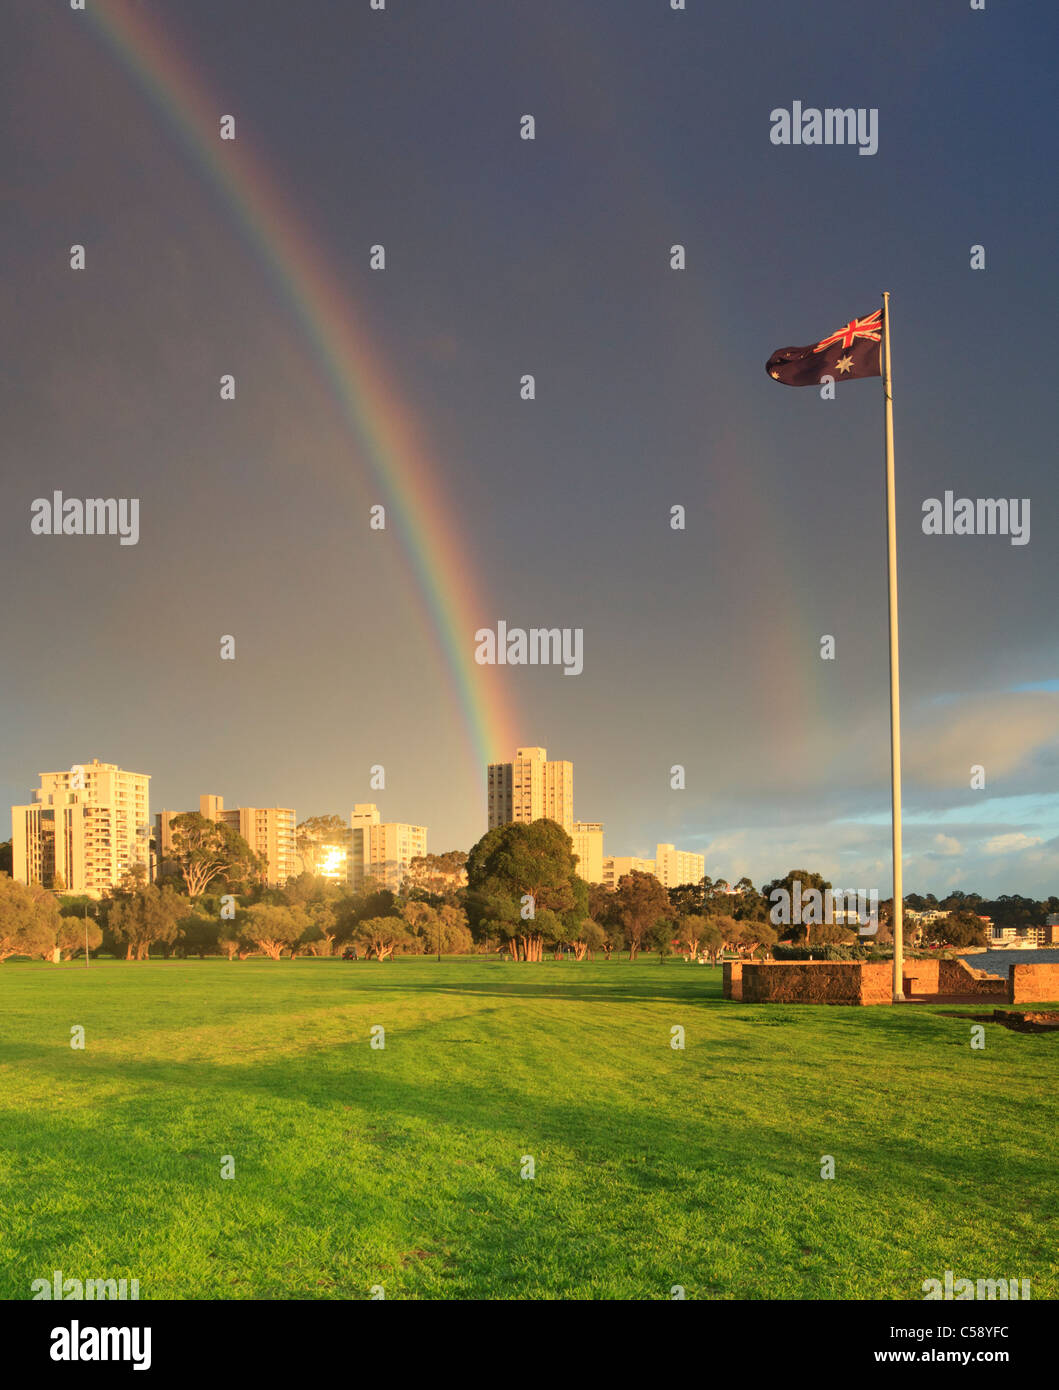 Rainbow over South Perth and Australian flag - Stock Image